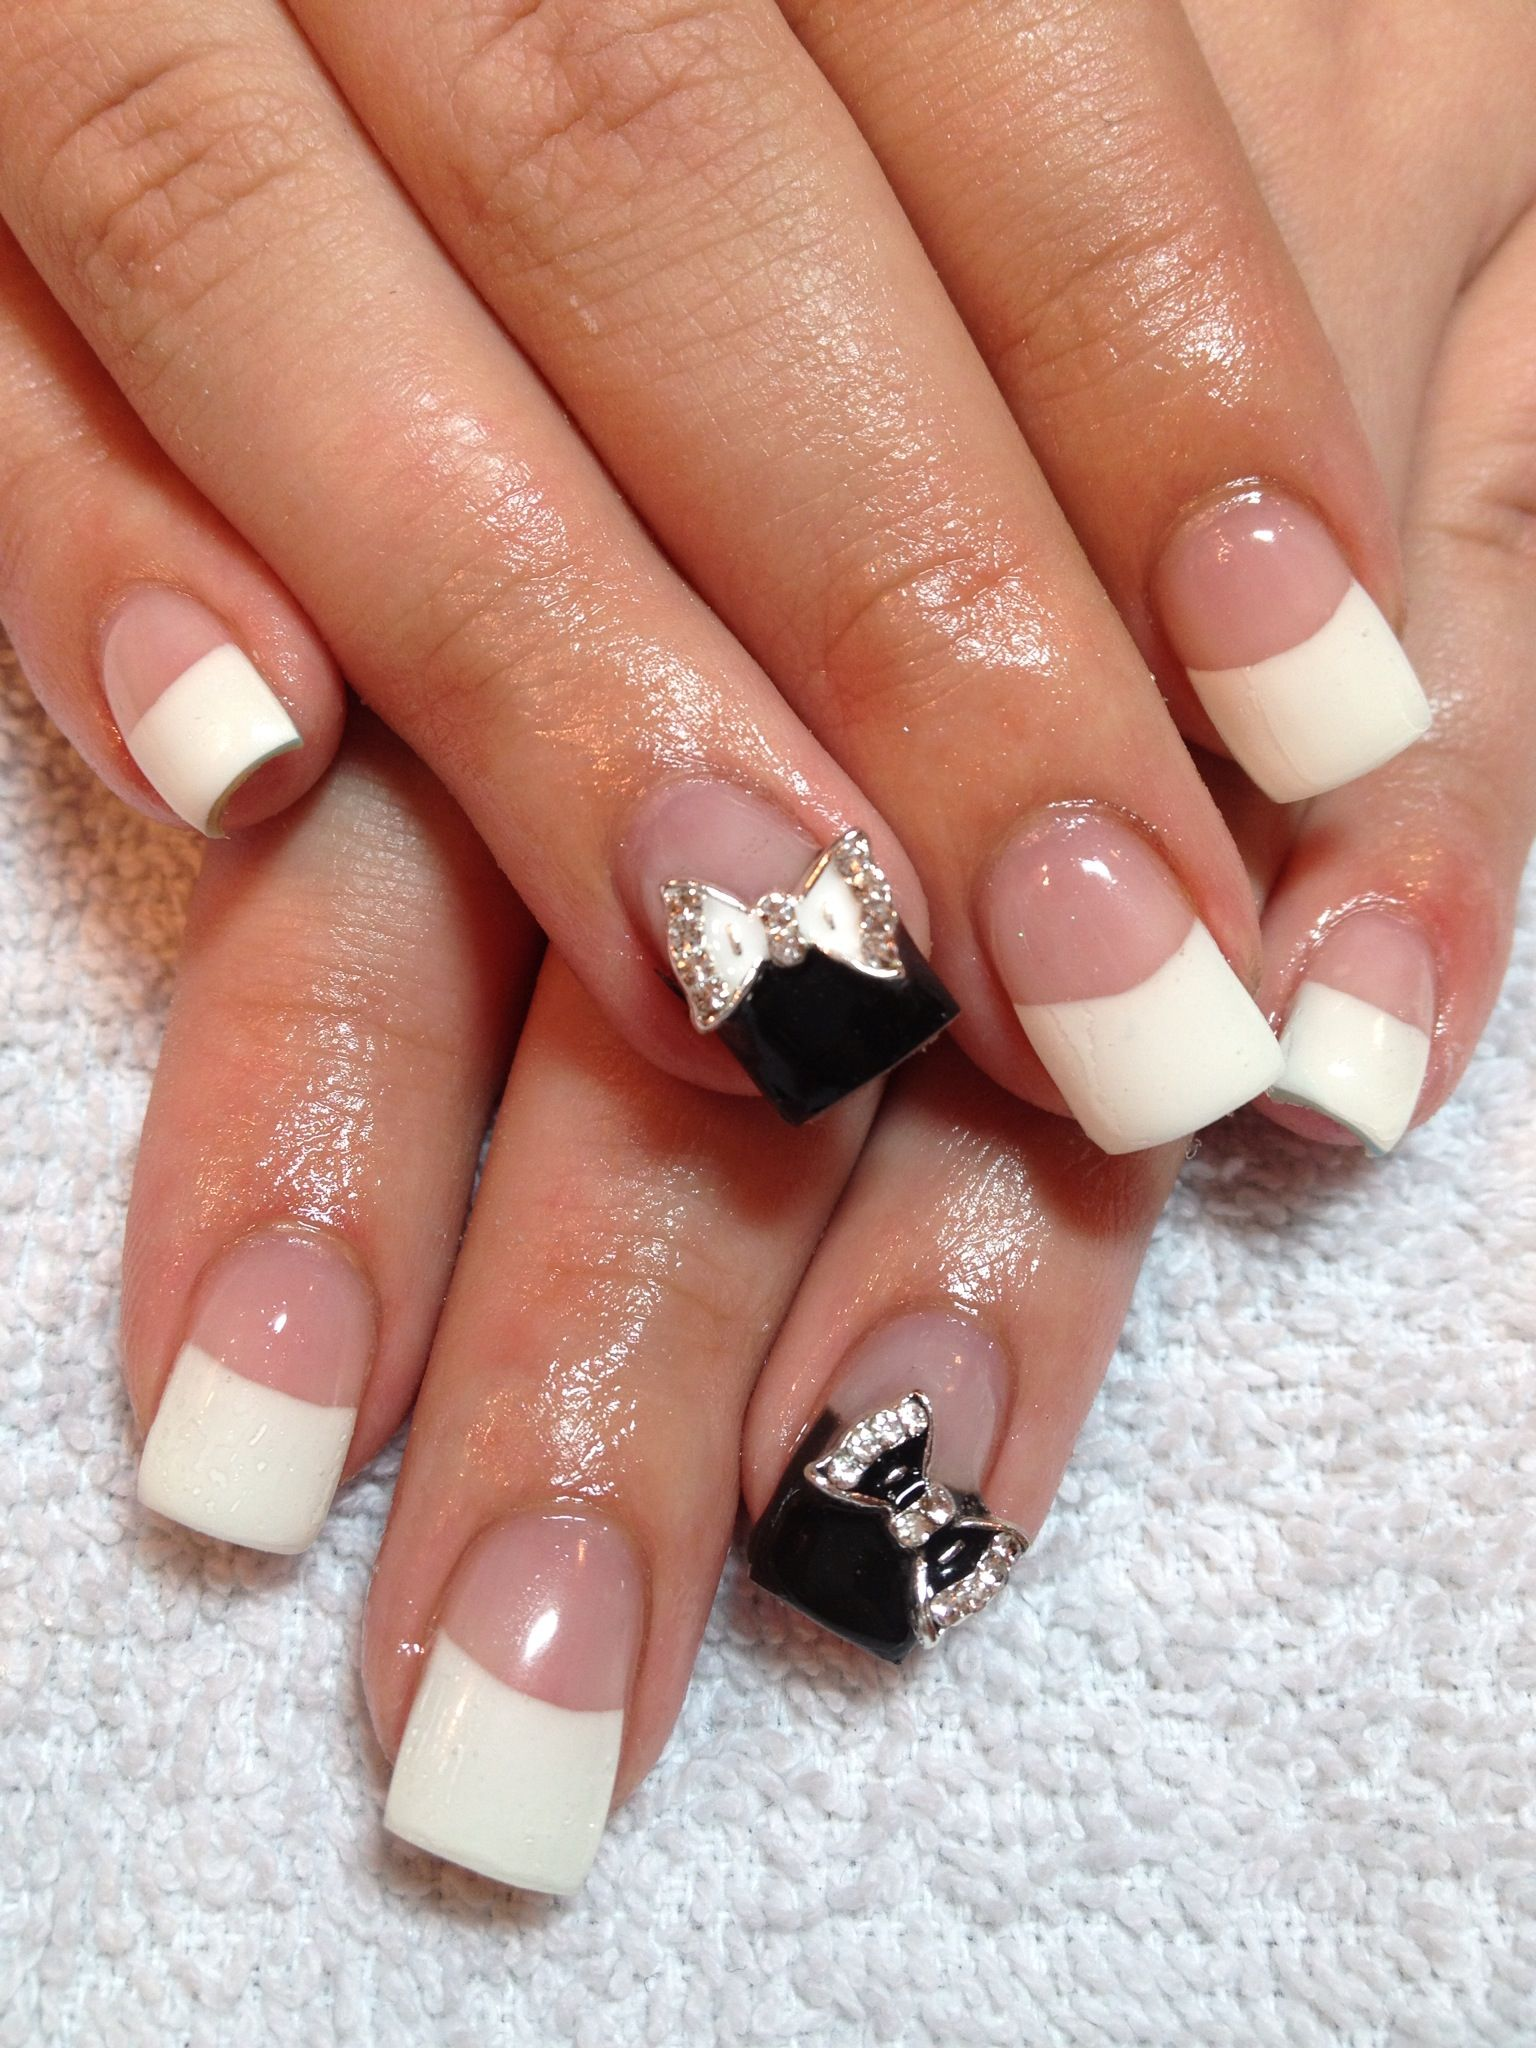 ♥ Elegant French Manicure with Black Manicure & Bow Gem Accent Gel ...